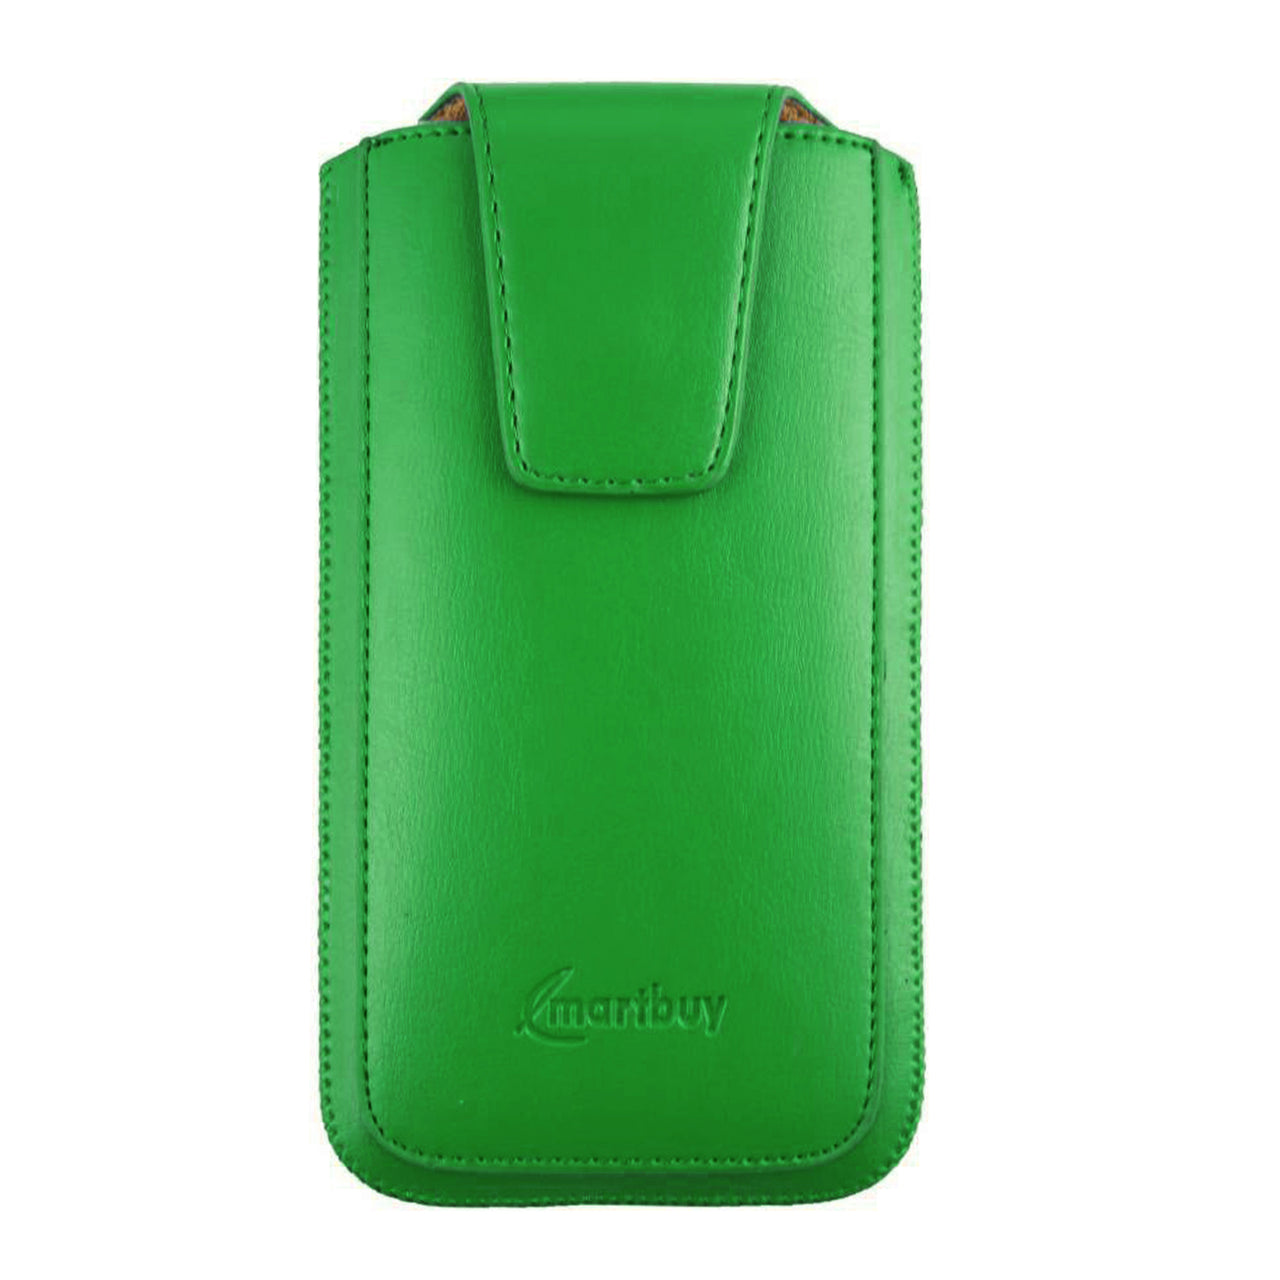 Universal Phone Pouch - Green Sleek